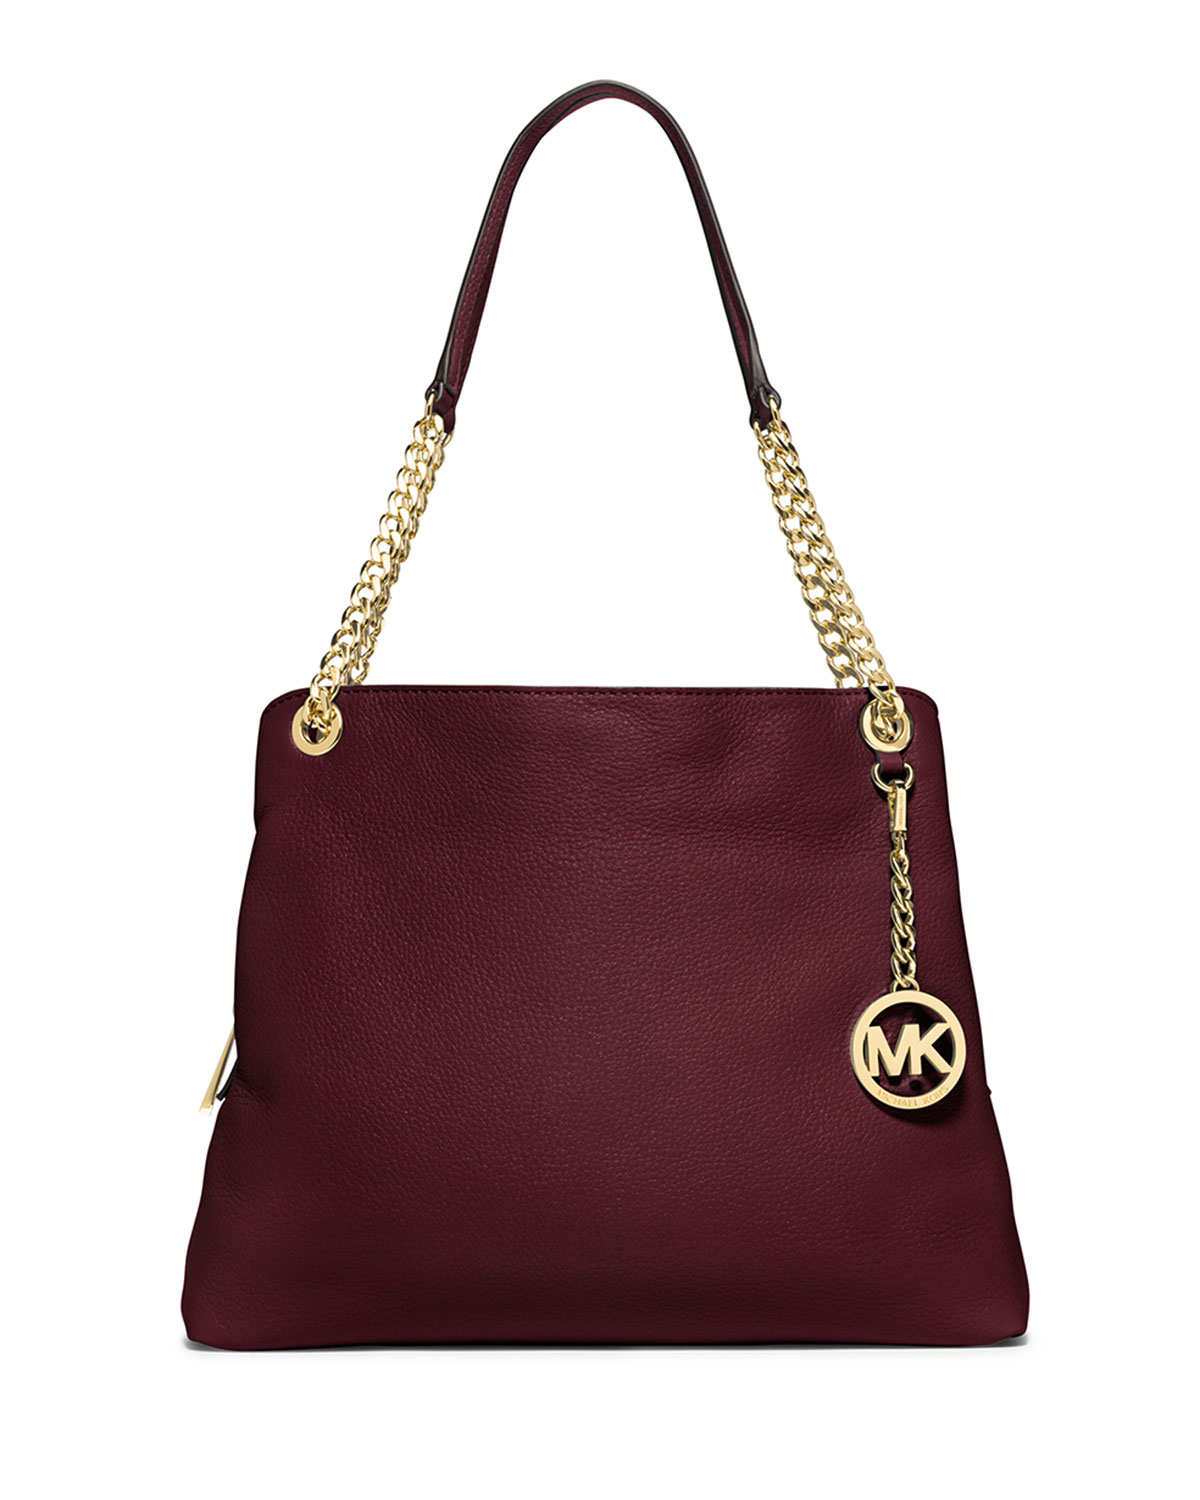 Michael michael kors Jet Set Chain Large Shoulder Bag in Purple | Lyst